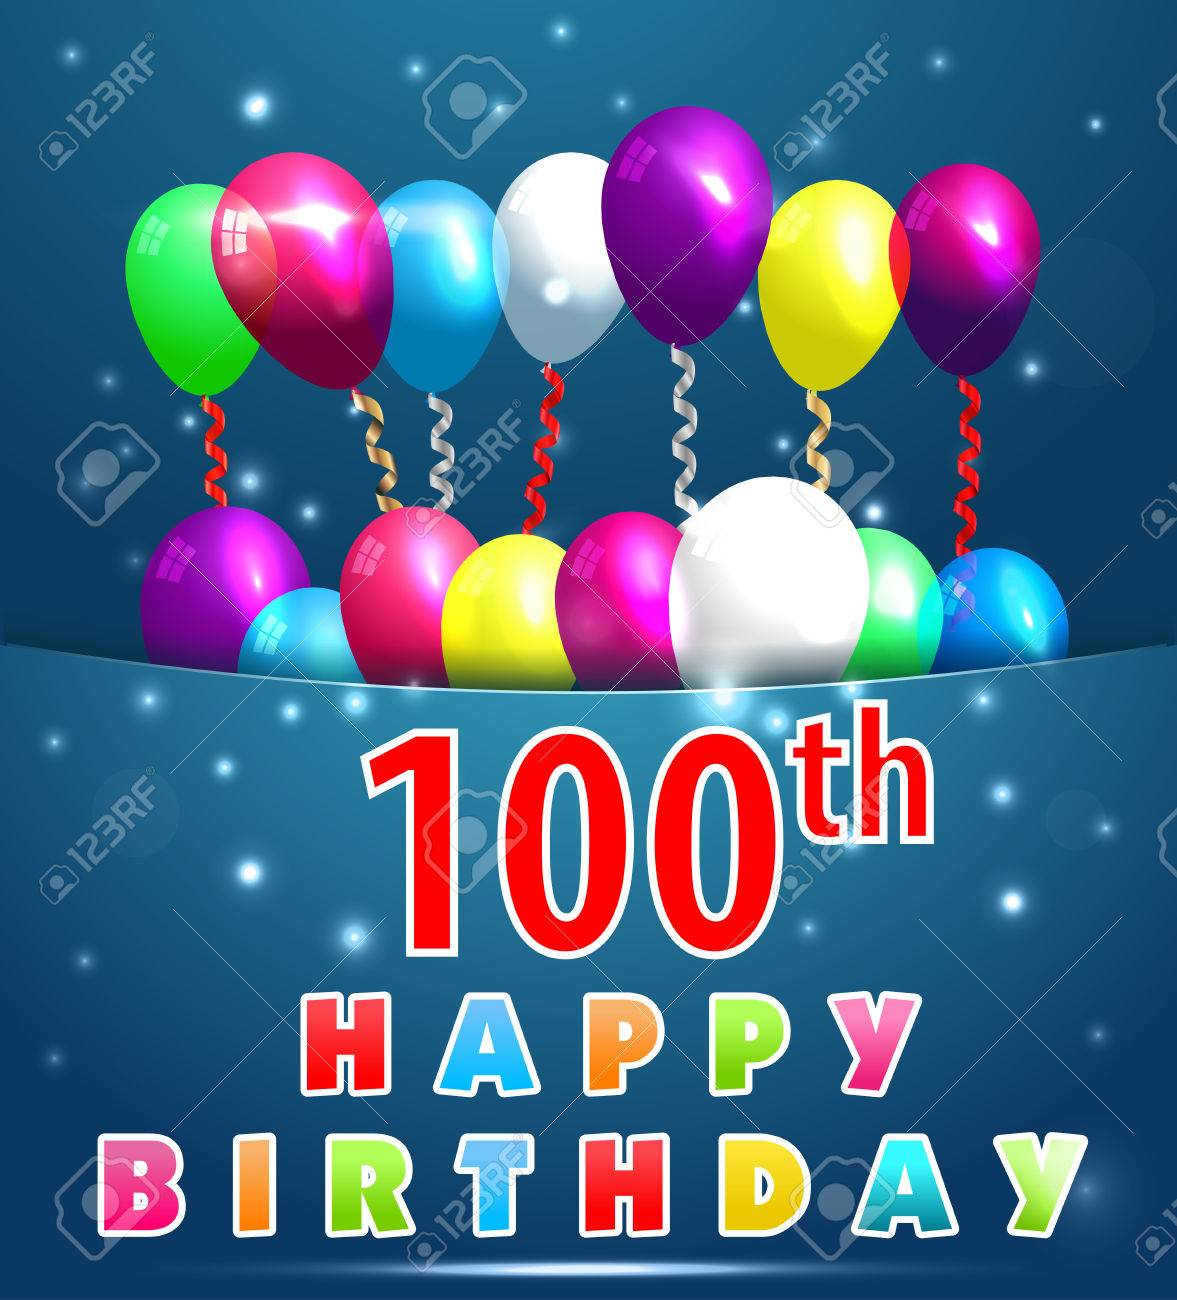 100 year happy birthday card with balloons and ribbons 100th 100 year happy birthday card with balloons and ribbons 100th birthday vector eps10 stock bookmarktalkfo Images